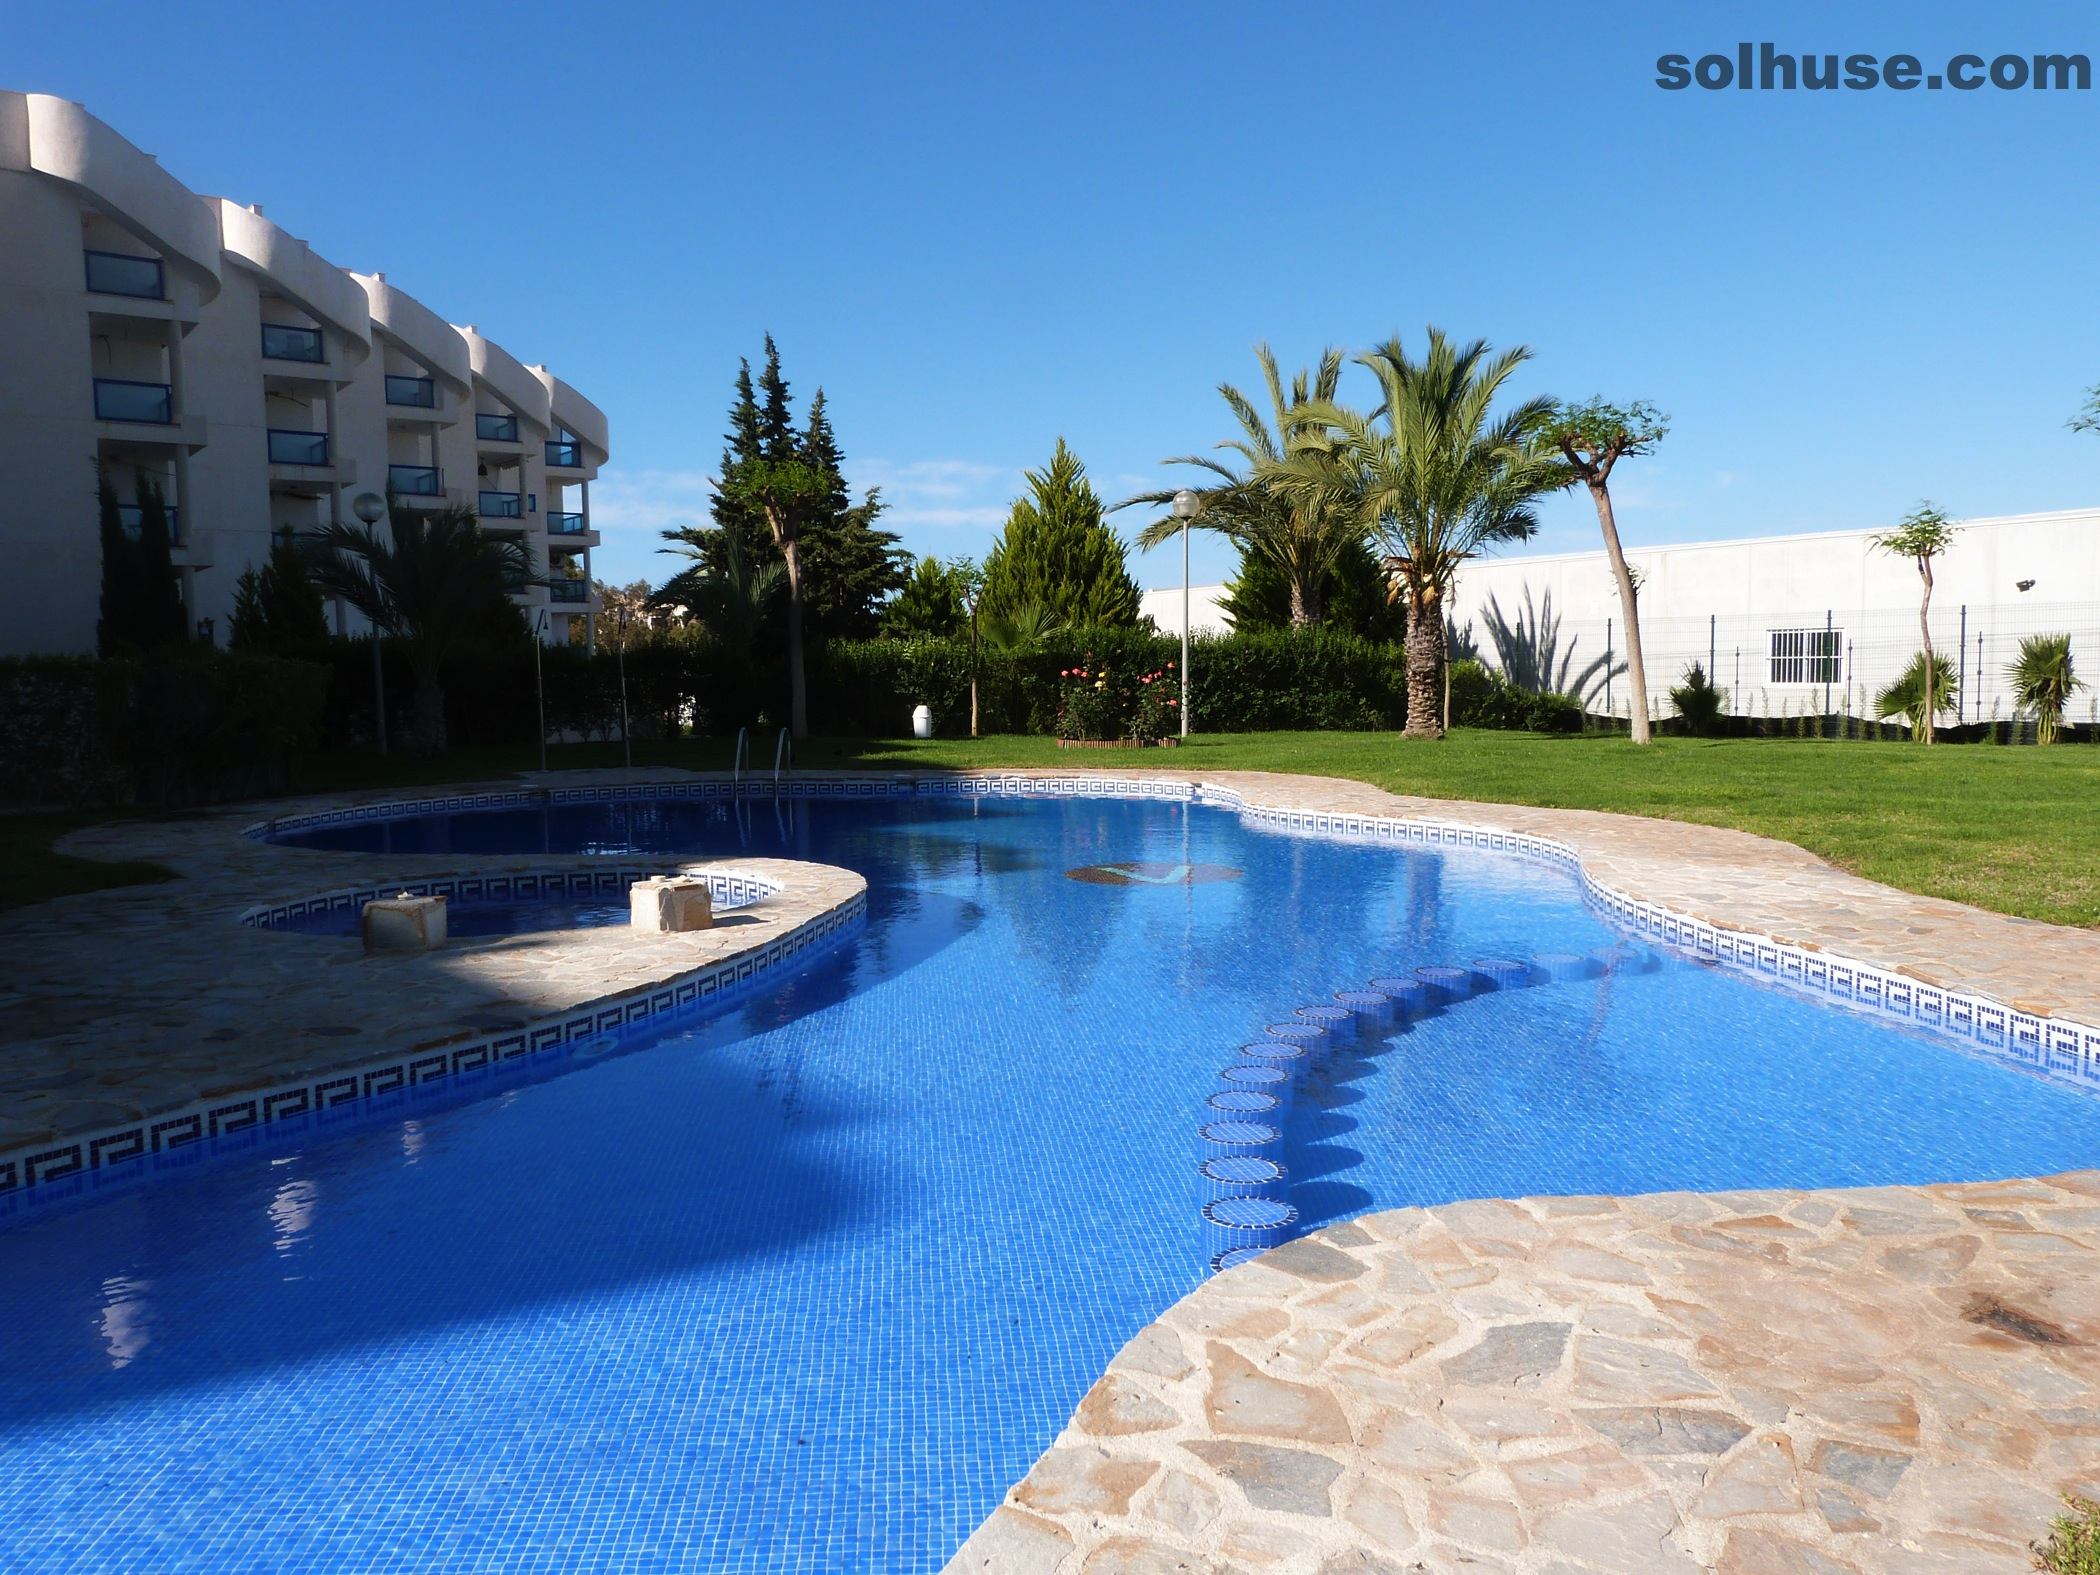 LOVELY GROUND FLOOR APARTMENT, COMMUNAL POOL & SEA VIEW